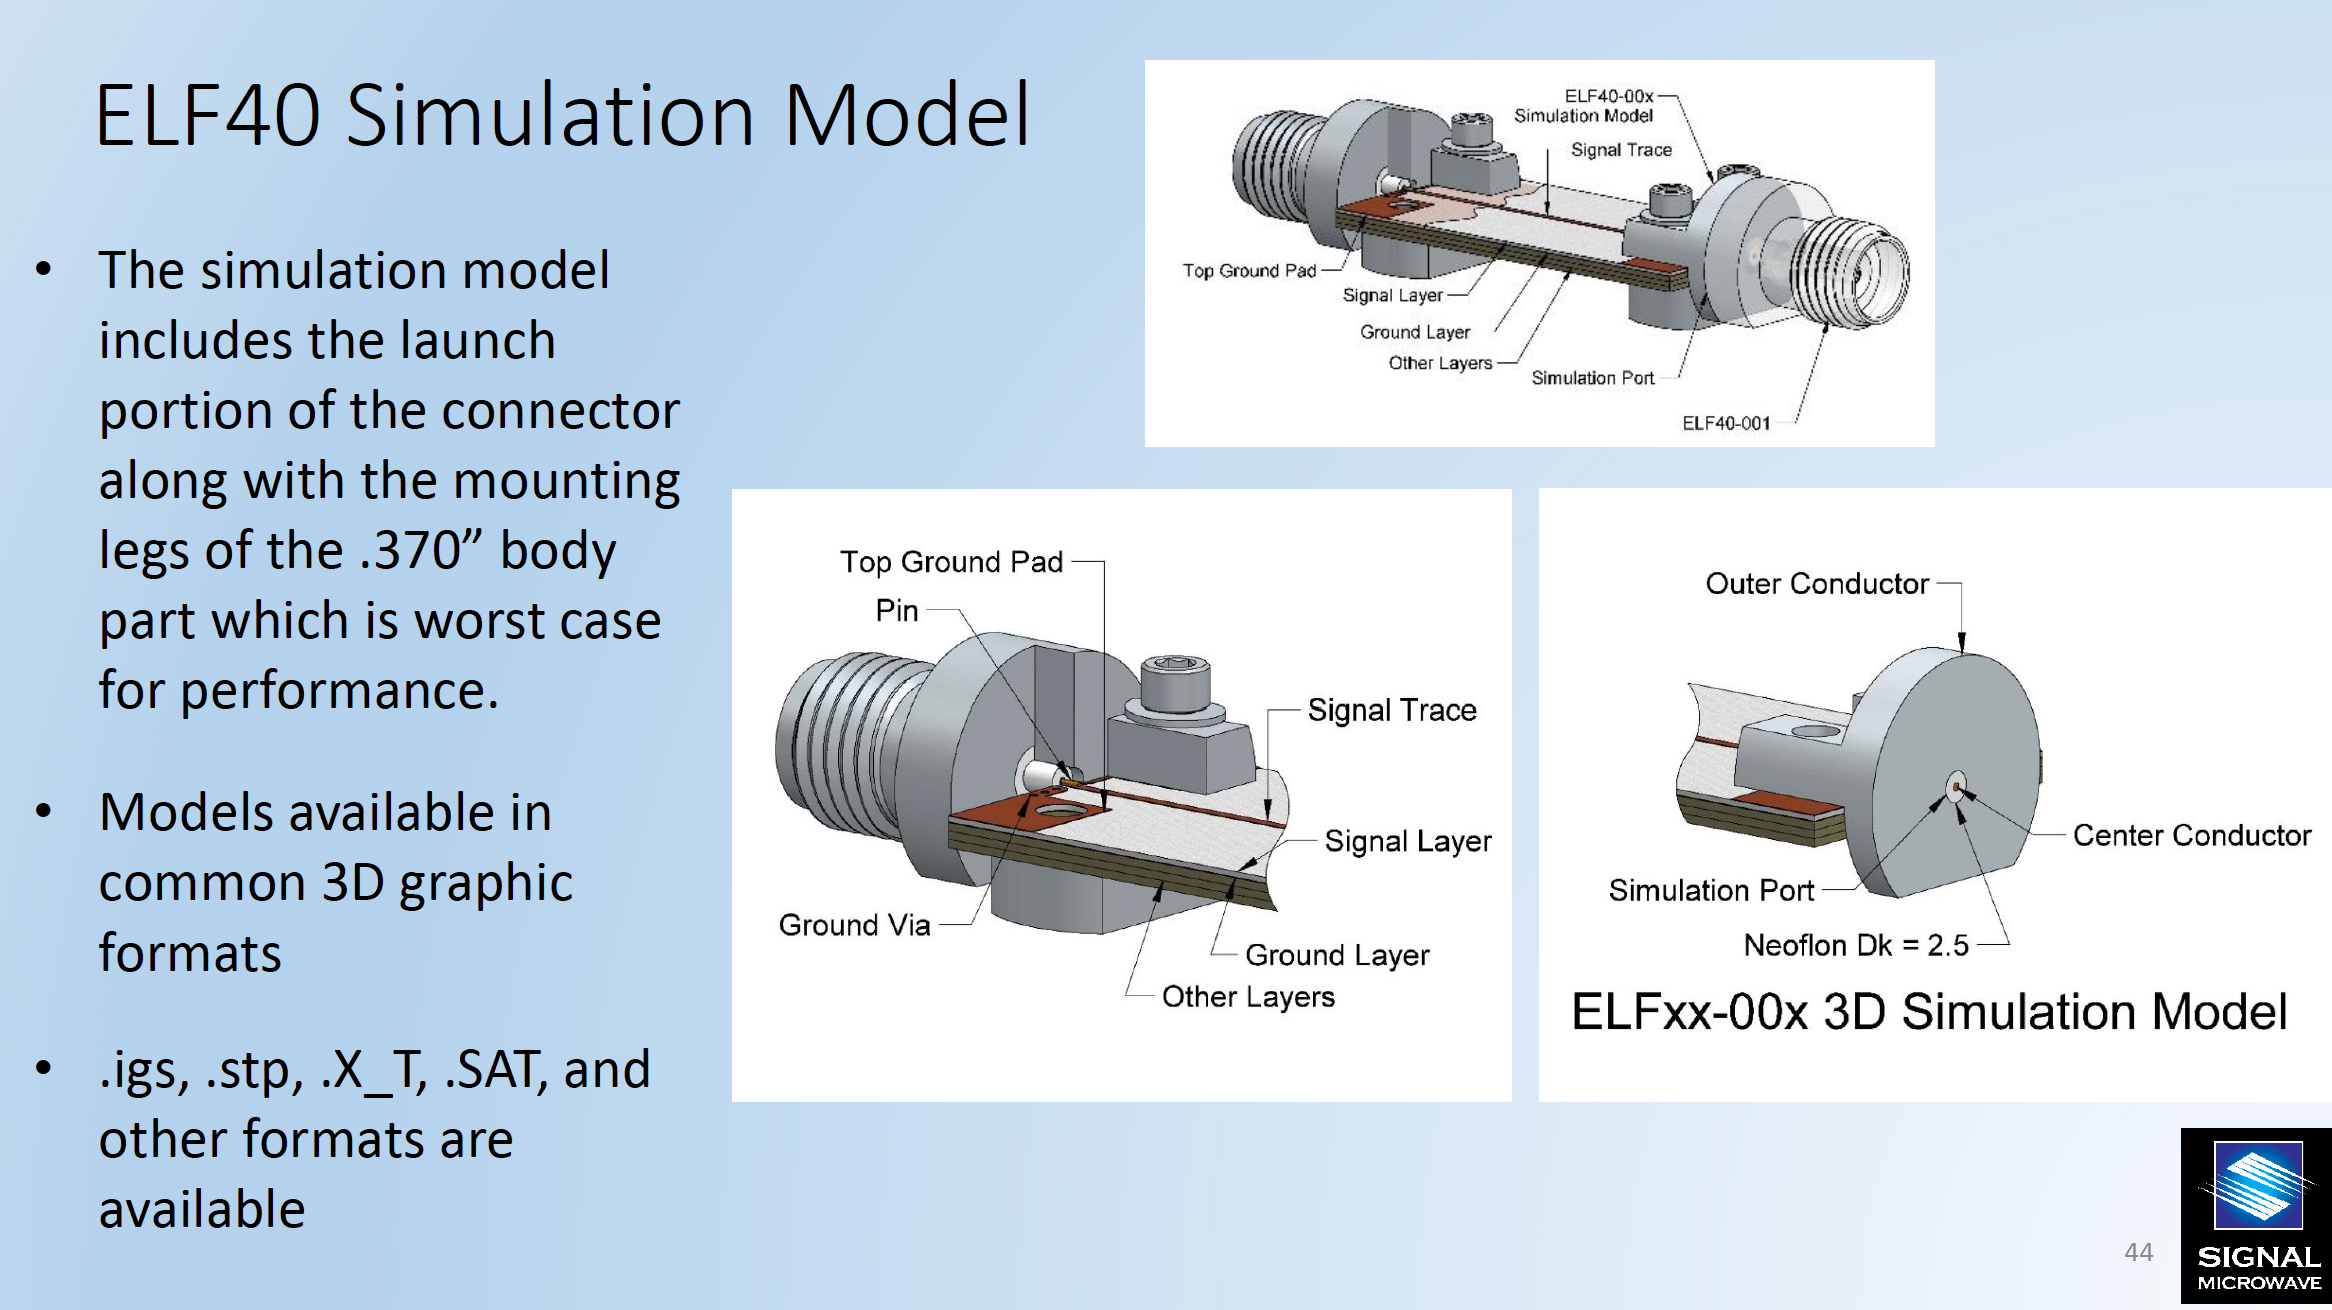 ELF40 Simulation Model